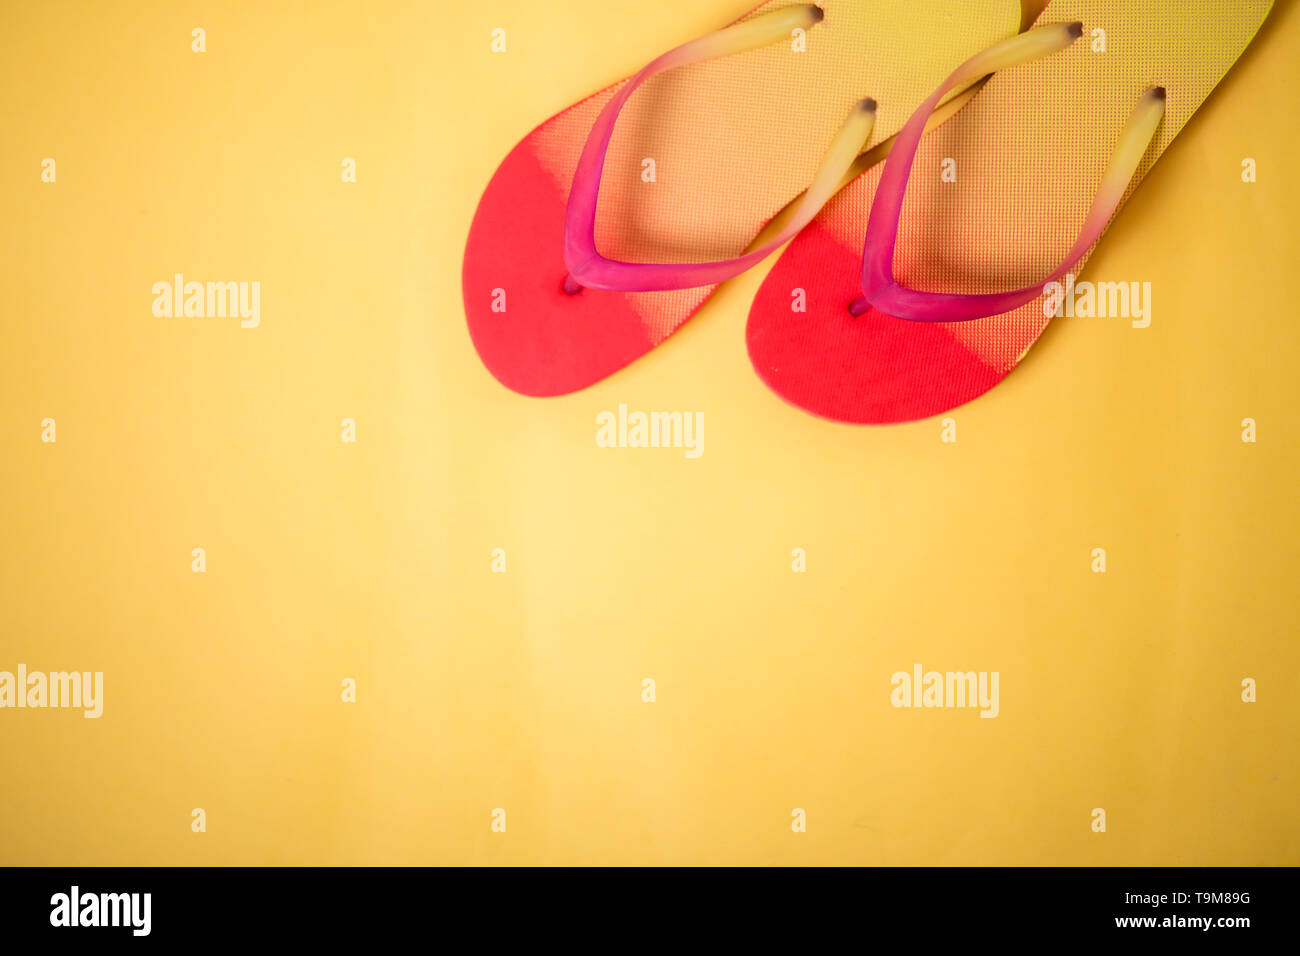 Coral pink sandals on yellow background with copy space. Flat lay, horizontal shot. Summertime, vacation, beach, shoes concept. - Stock Image